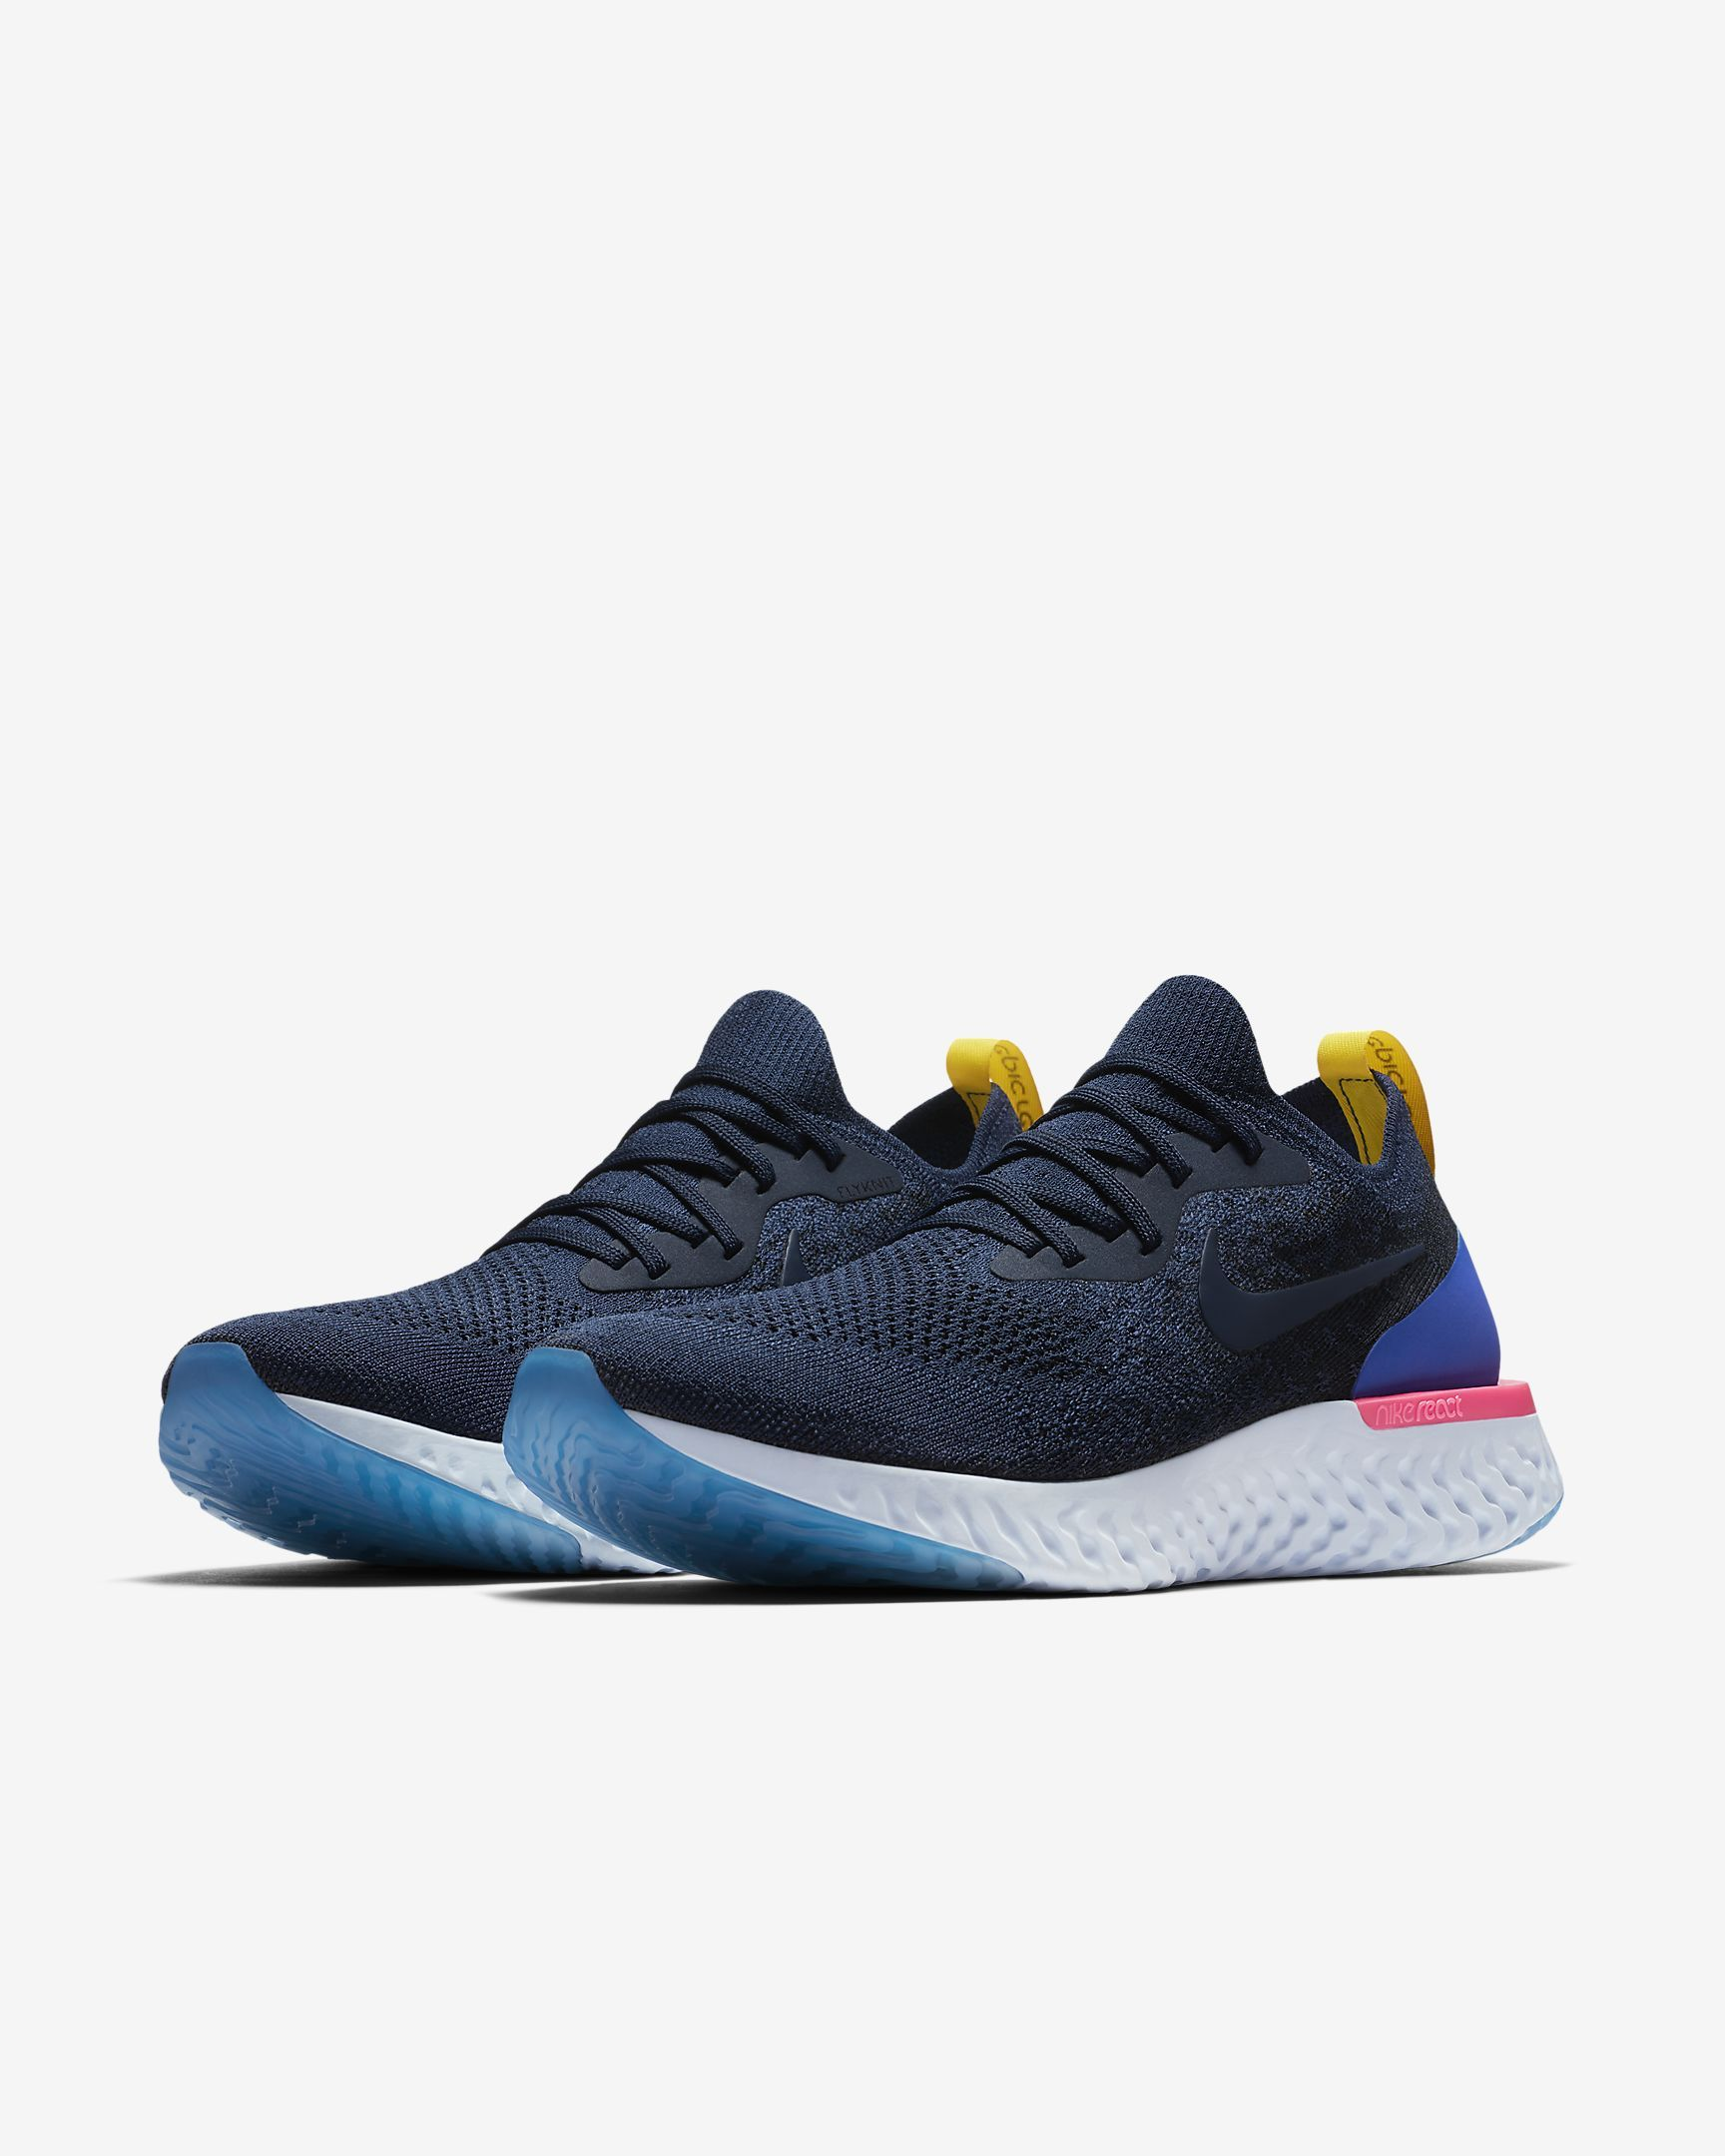 49f8e7b040e0 Nike Epic React Flyknit Men s Running Shoe